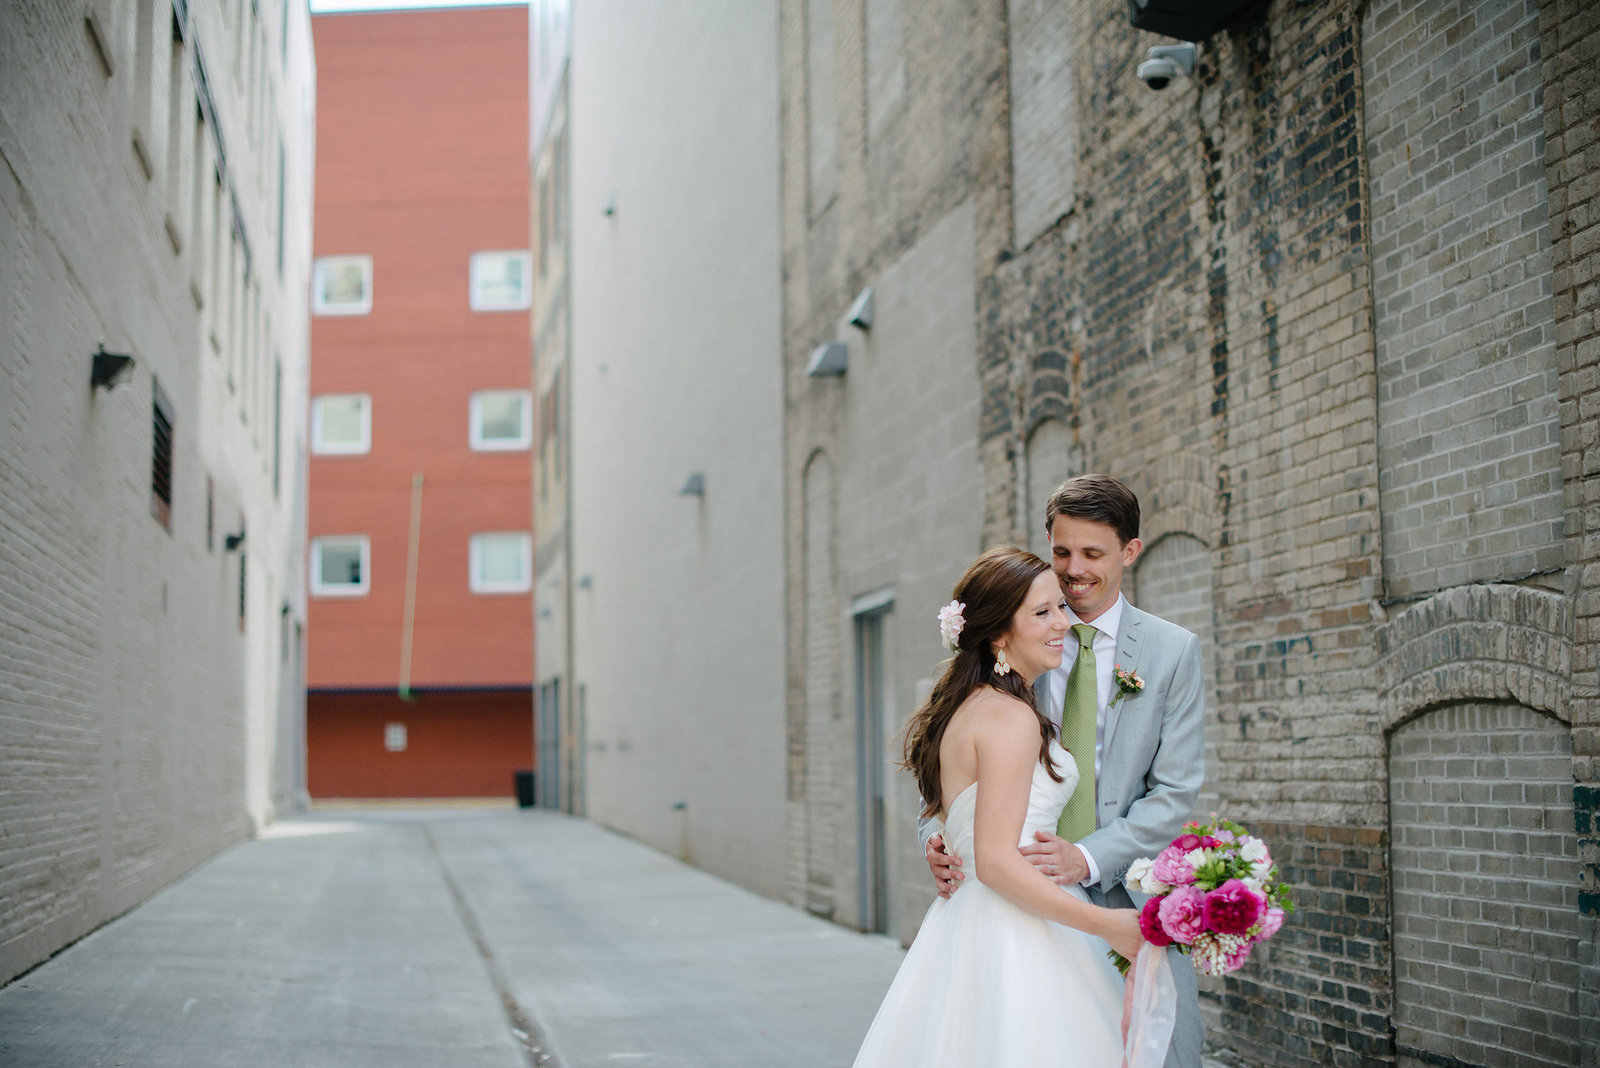 Minnesota Wedding Photographer Portfolio 2 B